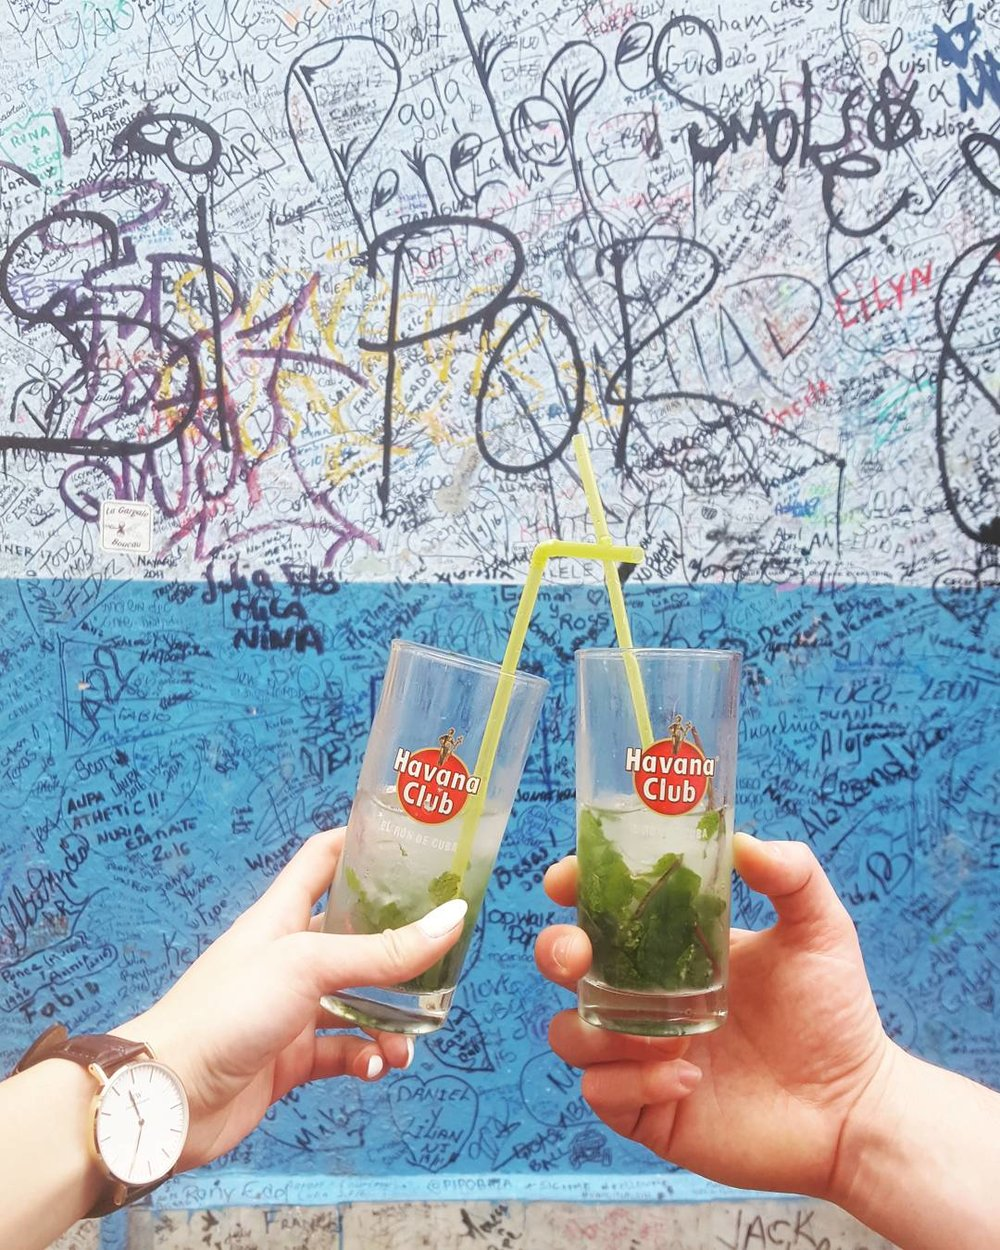 Cheers! Ernest Hemingway, the legendary writer, enjoyed afternoon mojitos on the reg at his go-to bar, La Bodeguita del Medio. If it was good enough for him, then it's good enough for us! The inside, and now outside walls too, are covered in graffiti by people who visit from all around the globe 🌎